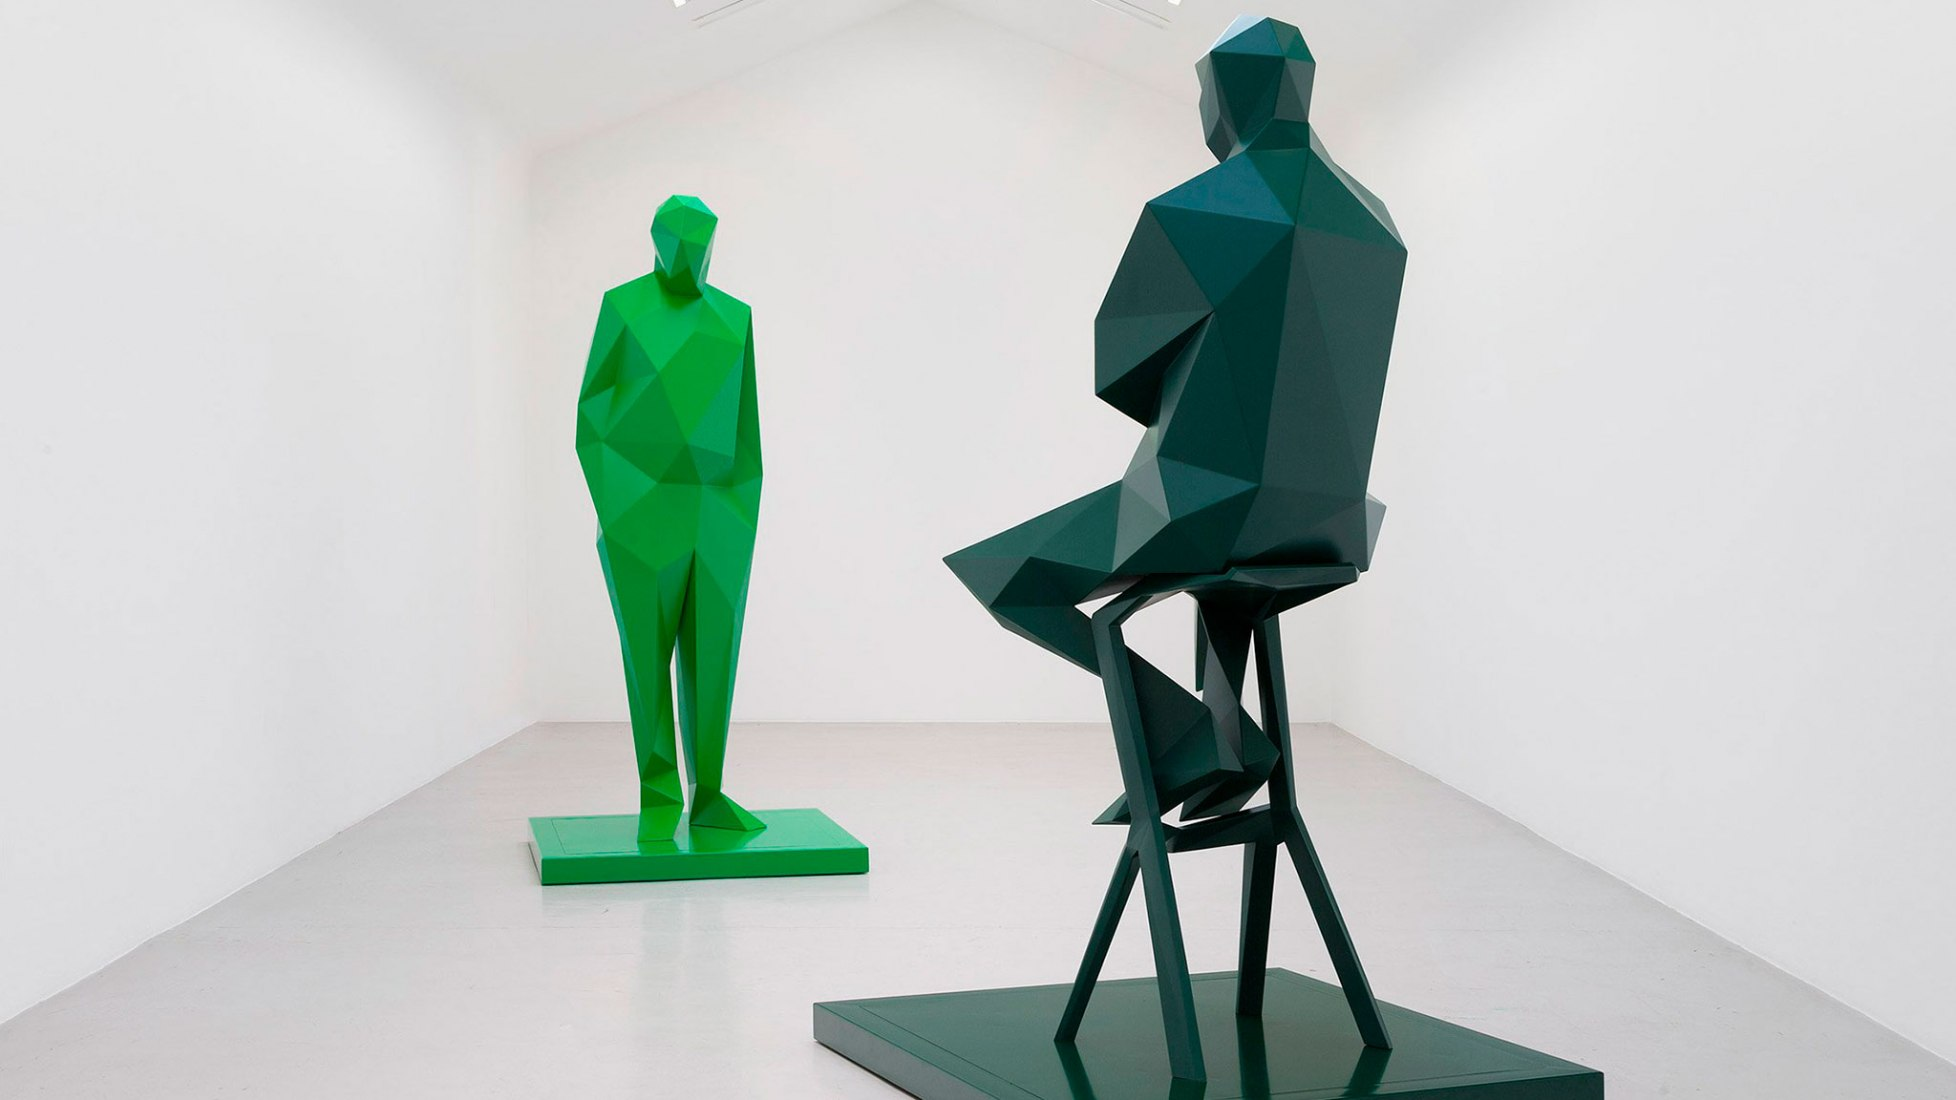 Sculptures of Renzo Piano and Richard Rogers in the recent Xavier Veilhan solo show